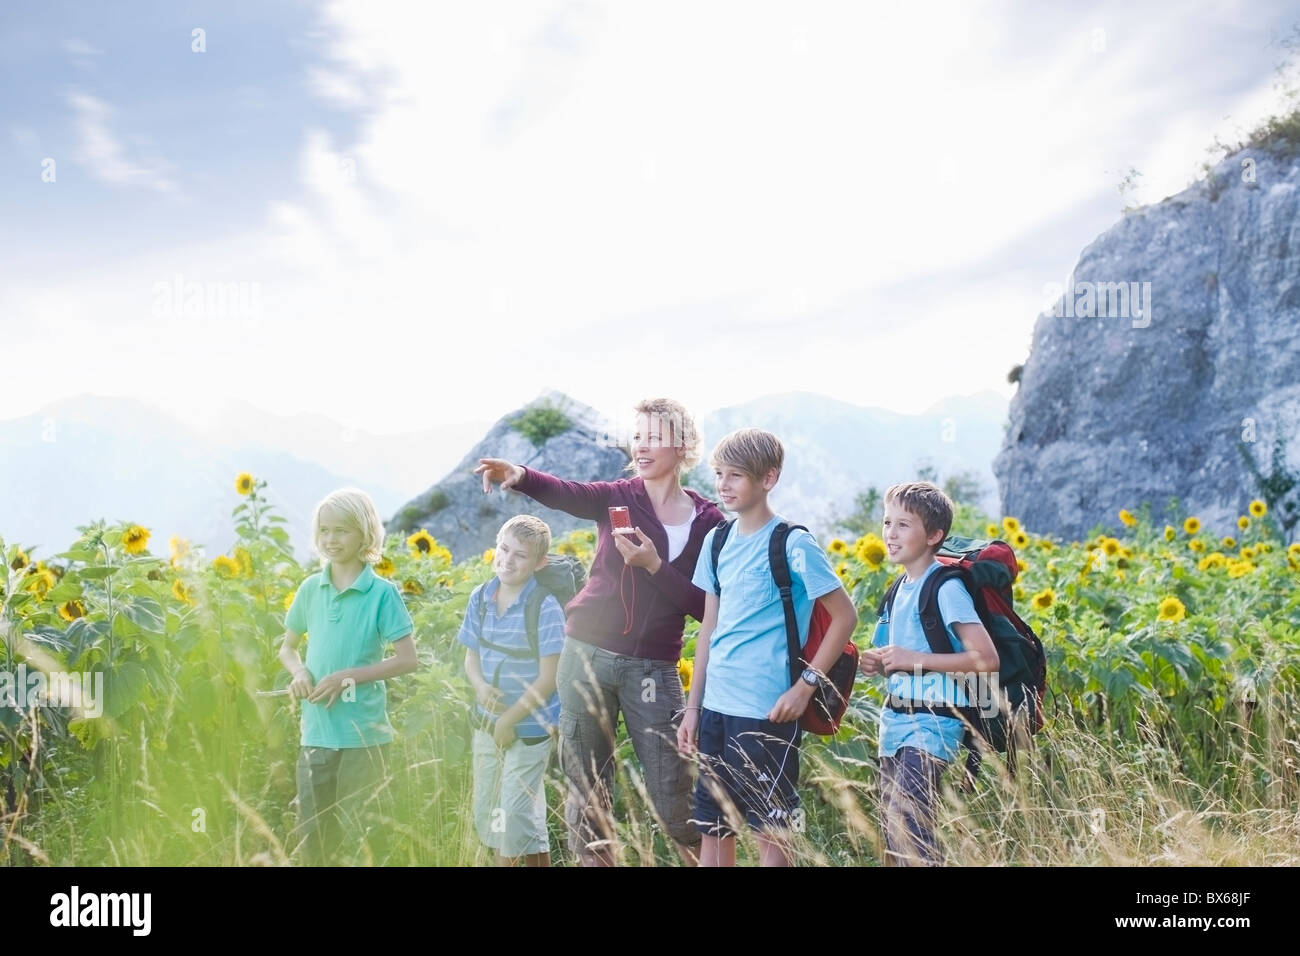 Woman with boys in nature - Stock Image